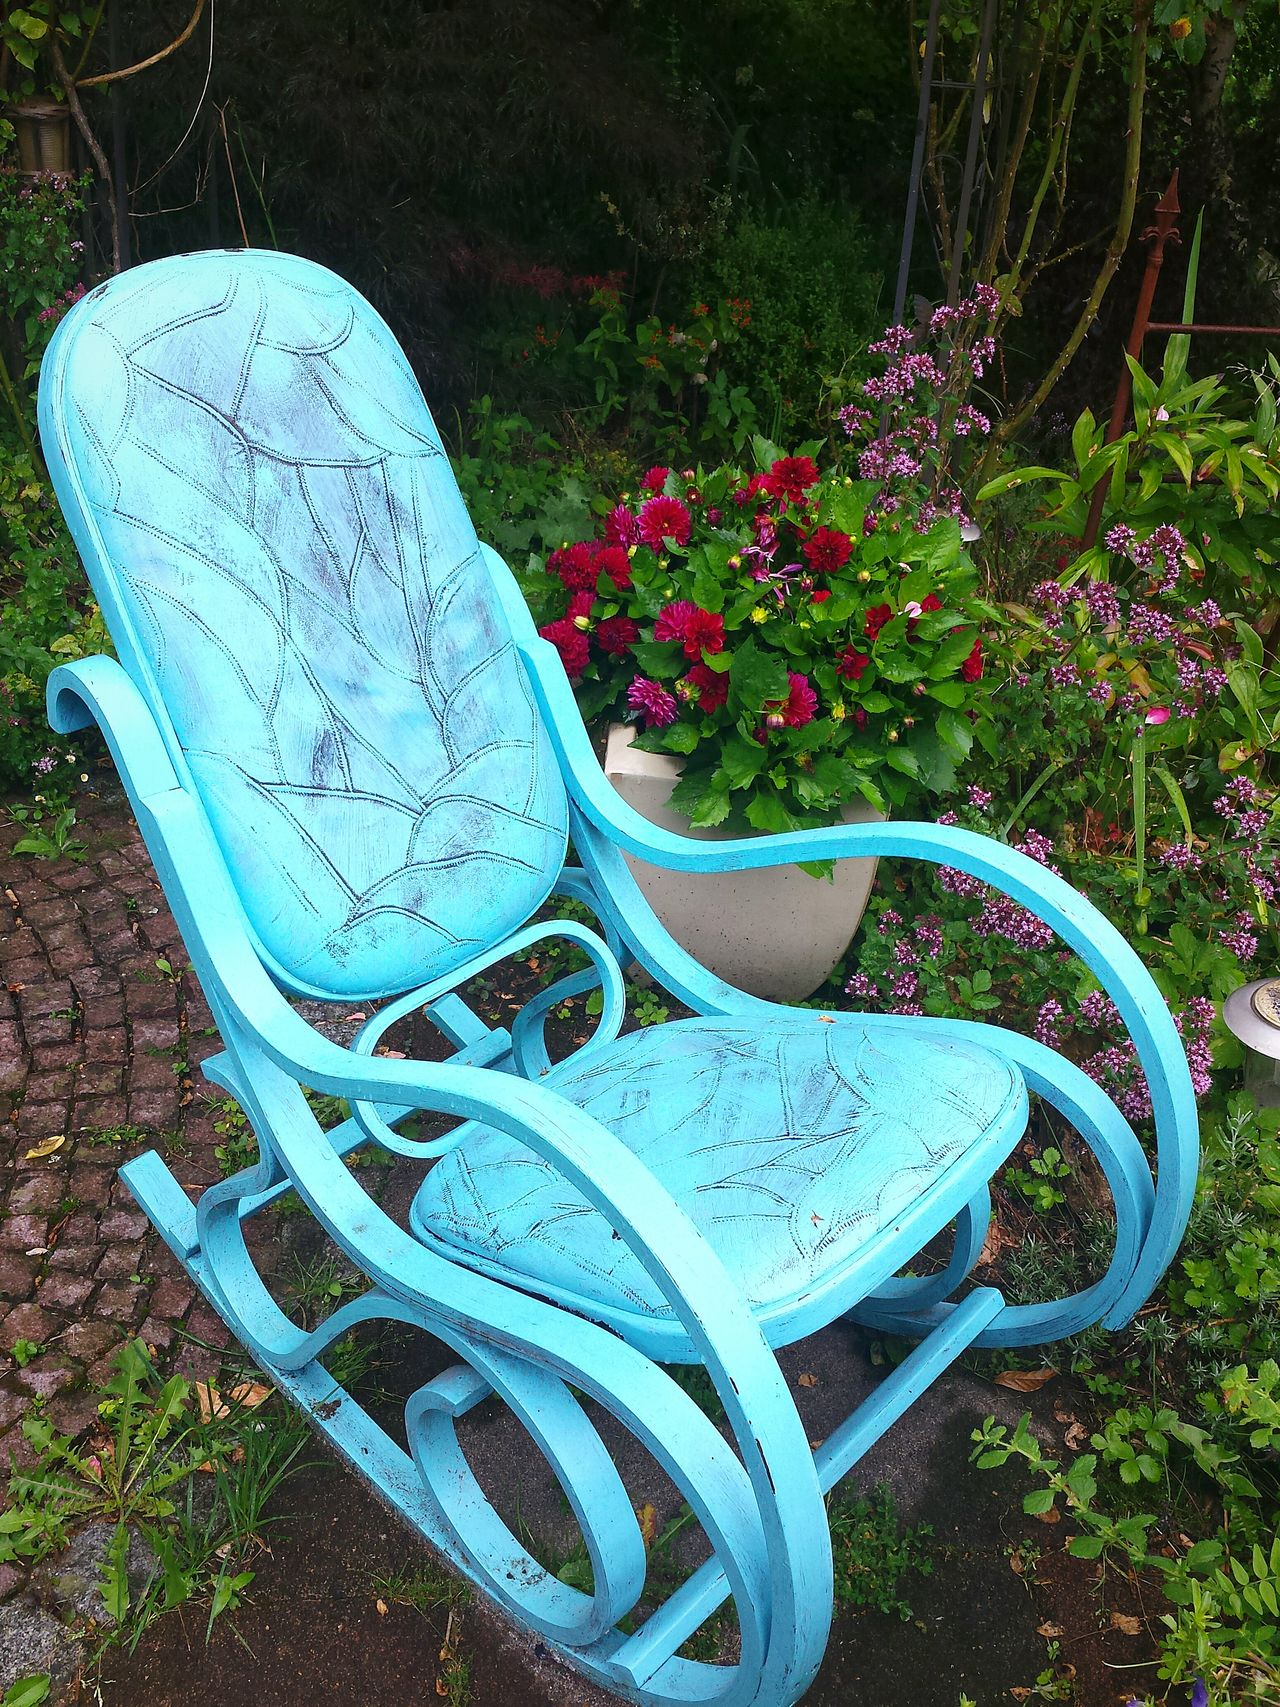 in a 'buddhistic' garden.... Garden Decor Garden Decoration Schaukelstuhl Painted Wood Still Life Stillleben Flowers Flowers, Nature And Beauty Flowers,Plants & Garden Hello World Come And Sit With Me For A While... Sit Down Have A Seat Have A Seat And Relax Have A Seat? Ladyphotographerofthemonth Showcase August Enjoying Life Turquoise Chairs Red Flowers Colour Splash Farbkontraste Colour Of Life